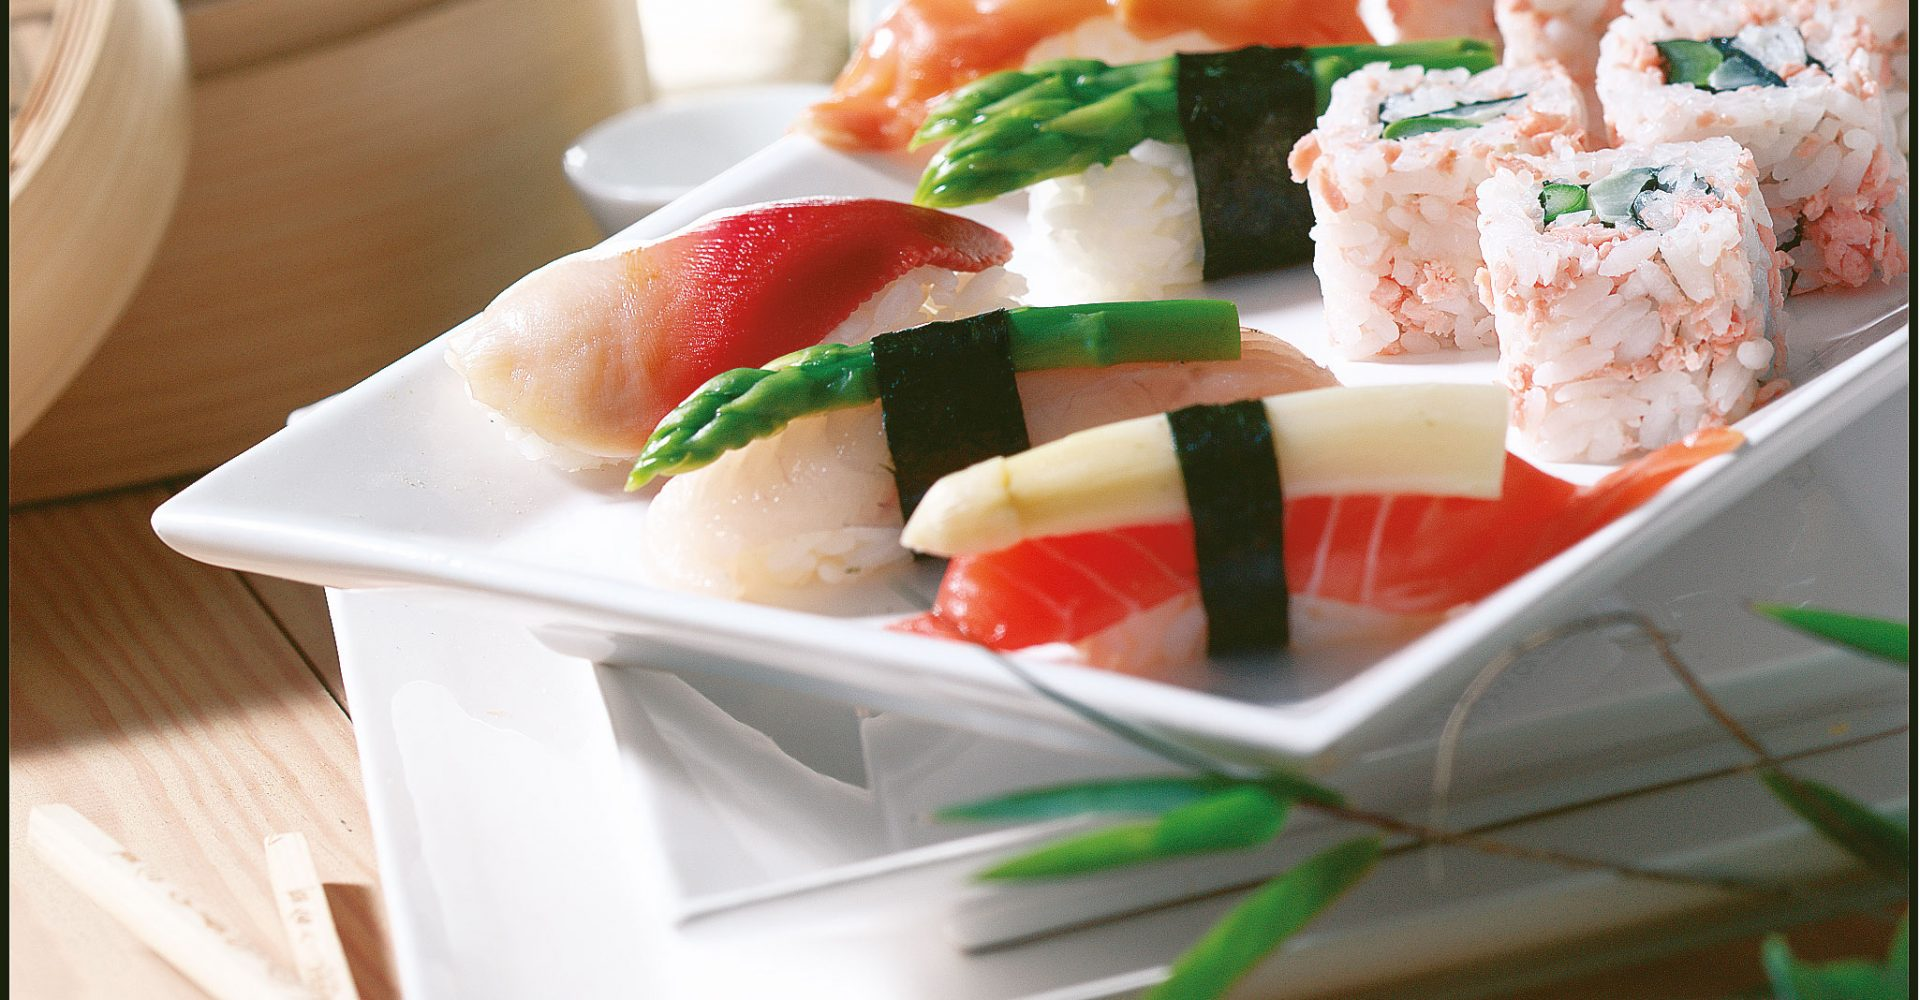 Superfood - Spargel trifft Sushi